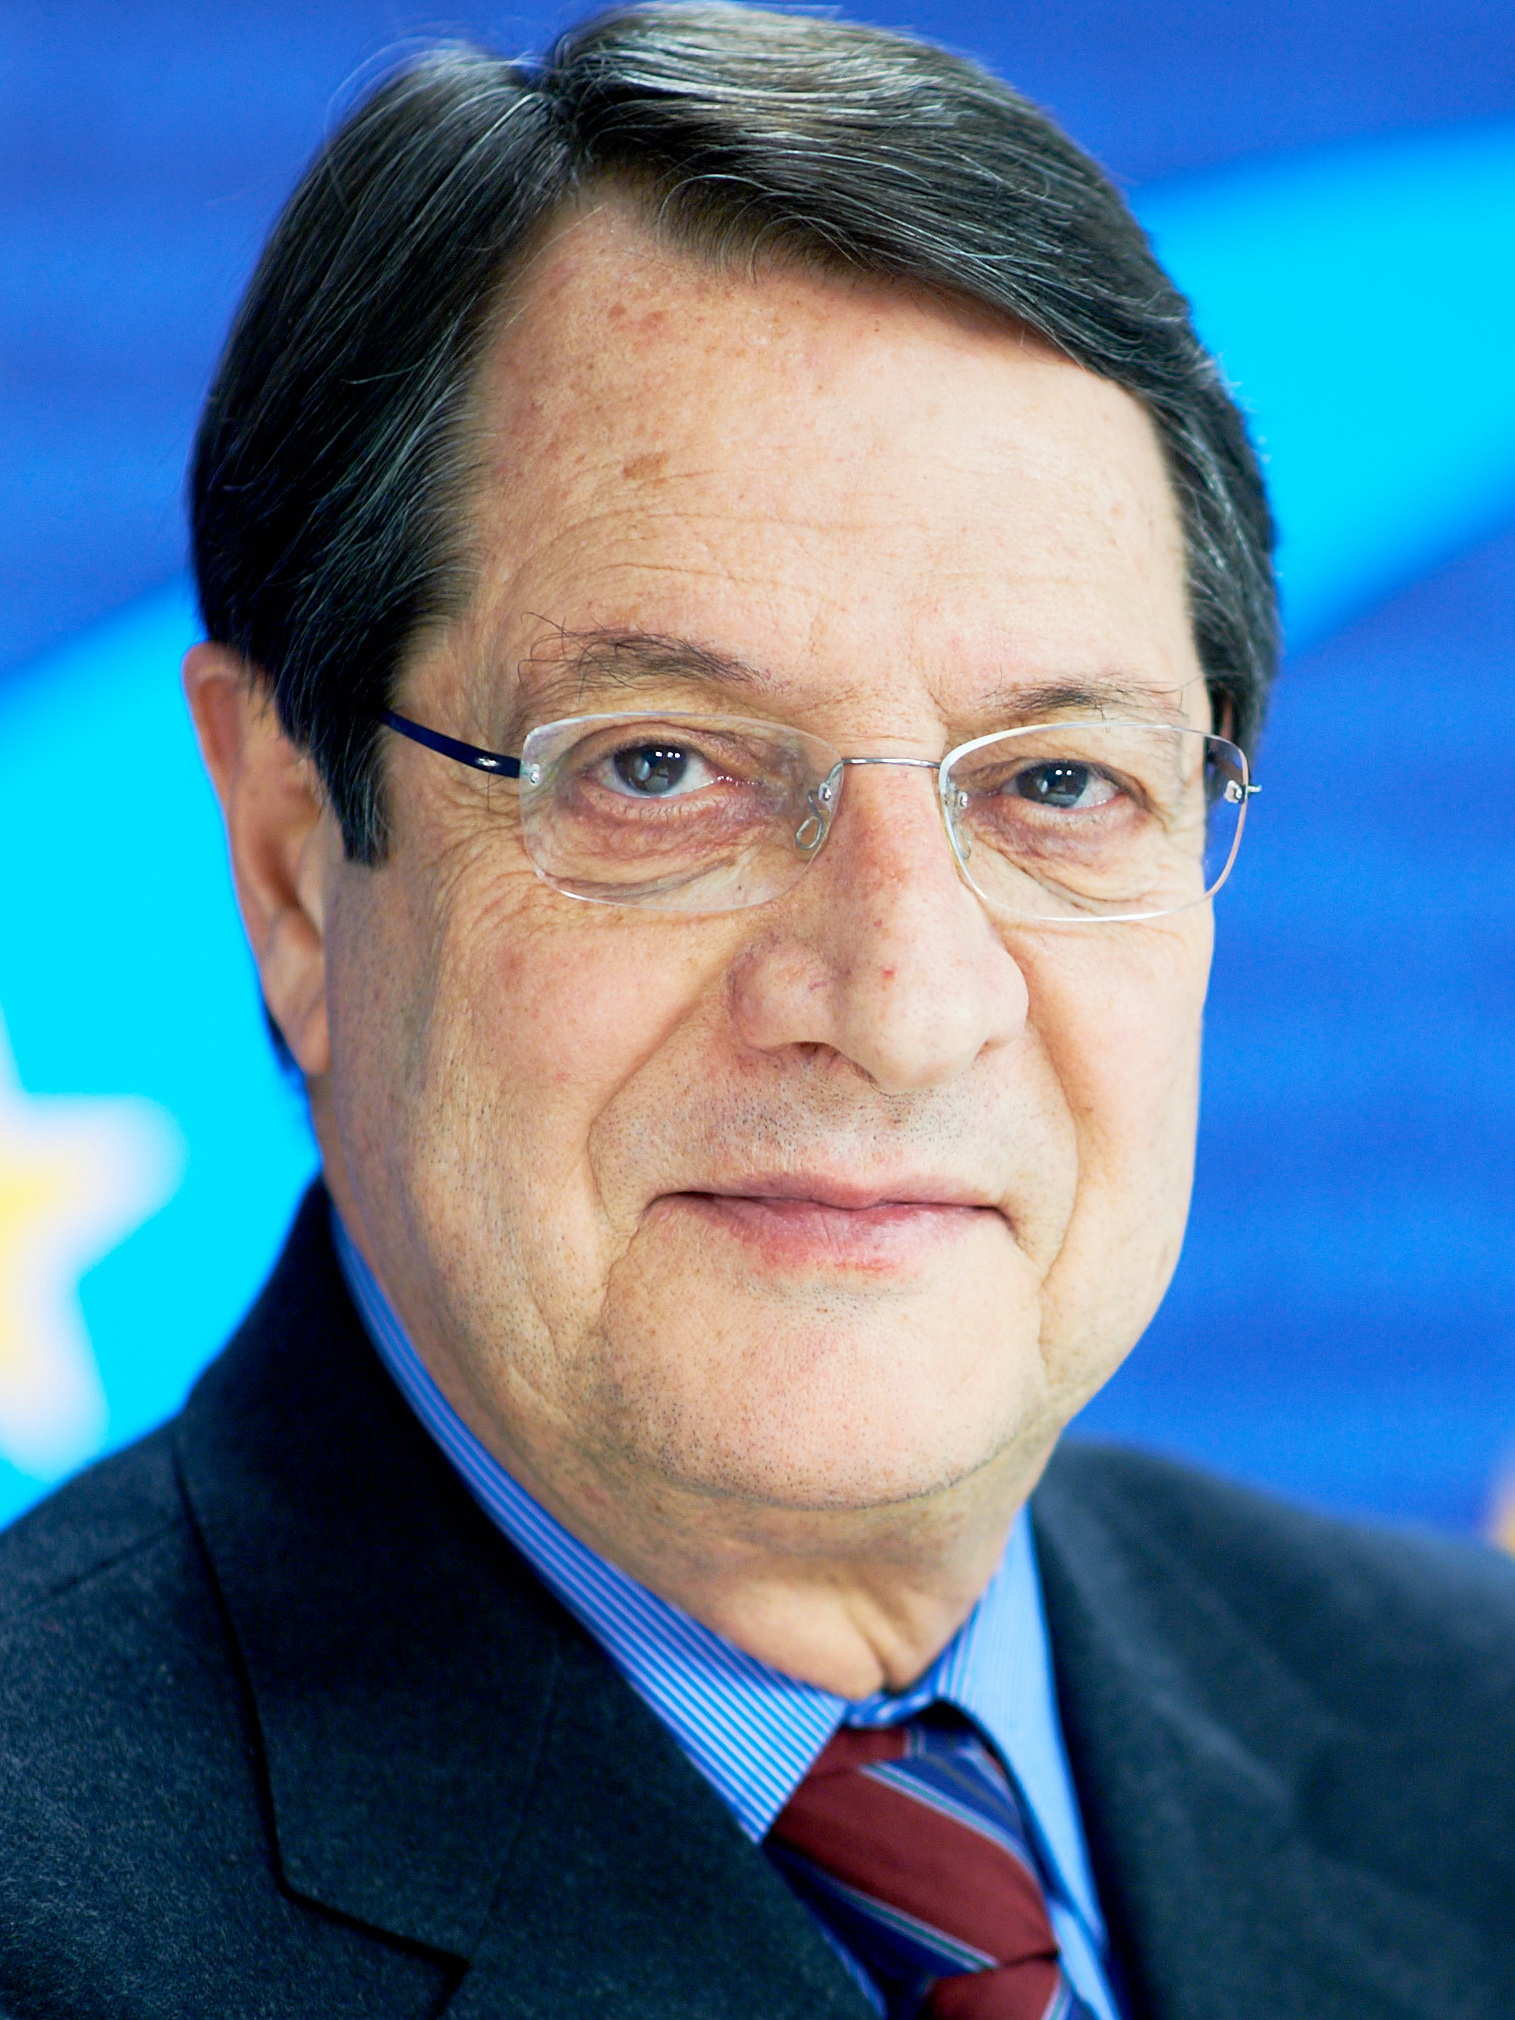 https://upload.wikimedia.org/wikipedia/commons/8/85/Nicos_Anastasiades_at_EPP_HQ.jpg